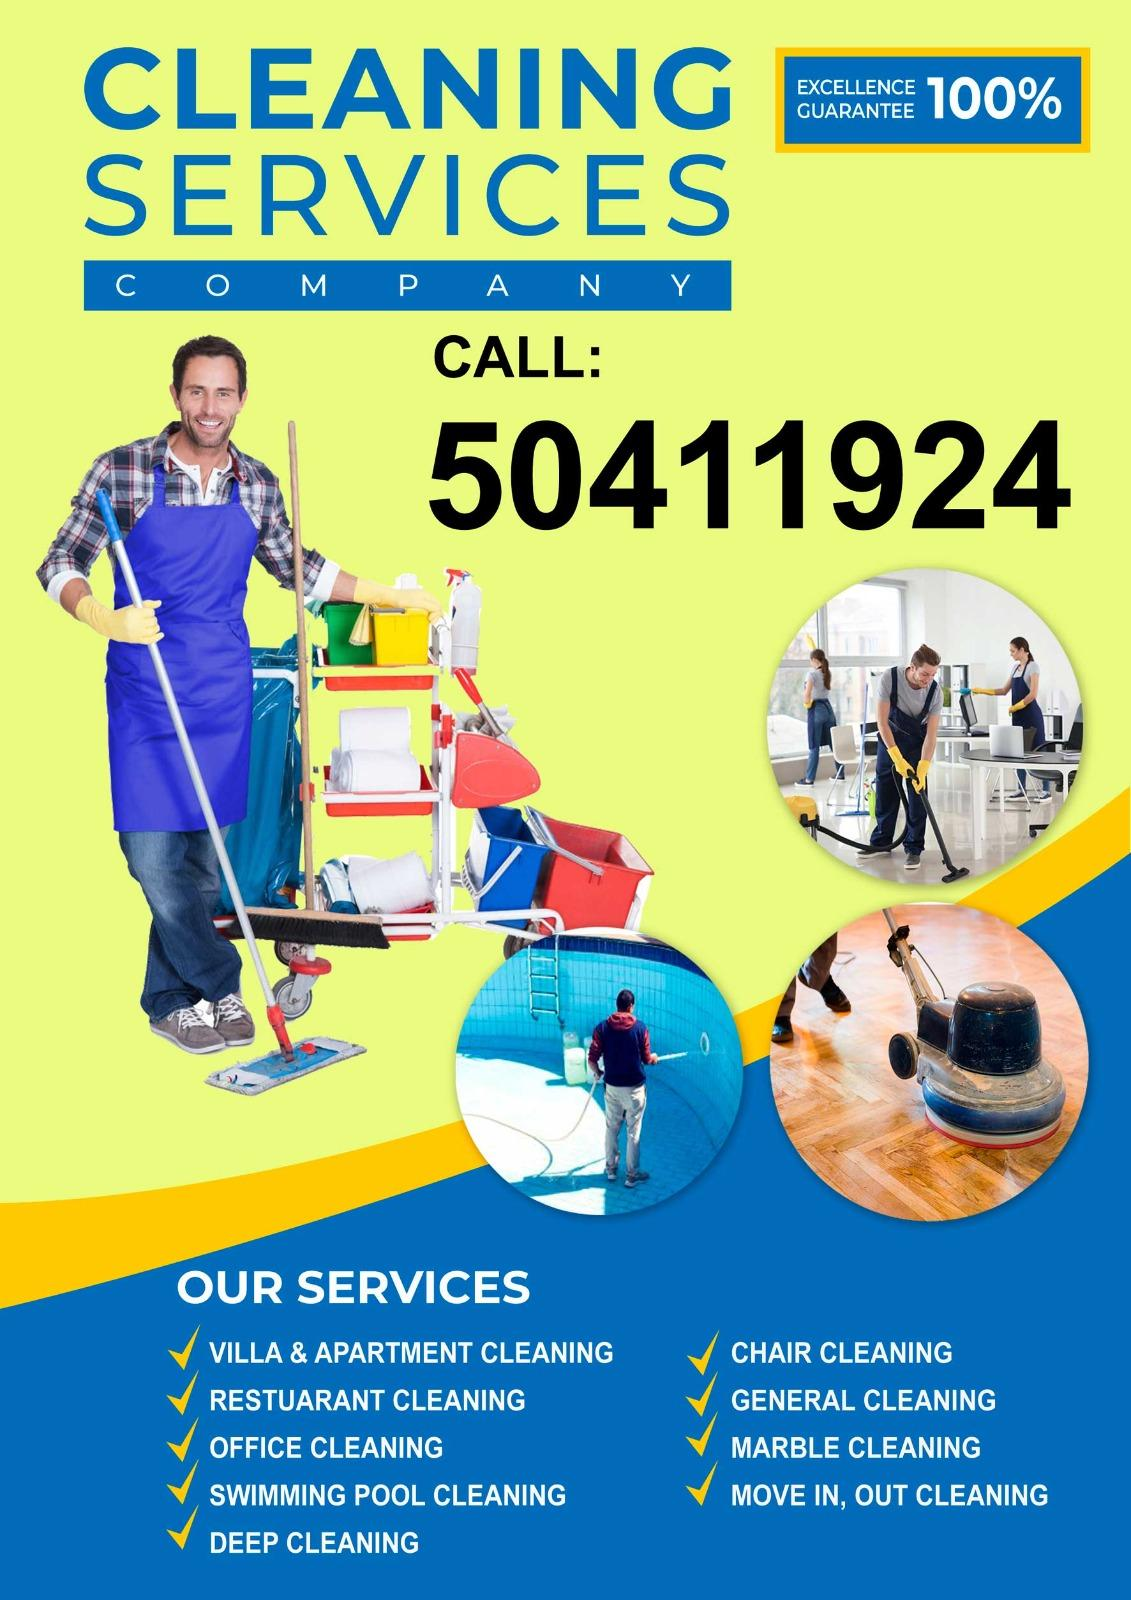 Cleaning services company. Please call 50411924